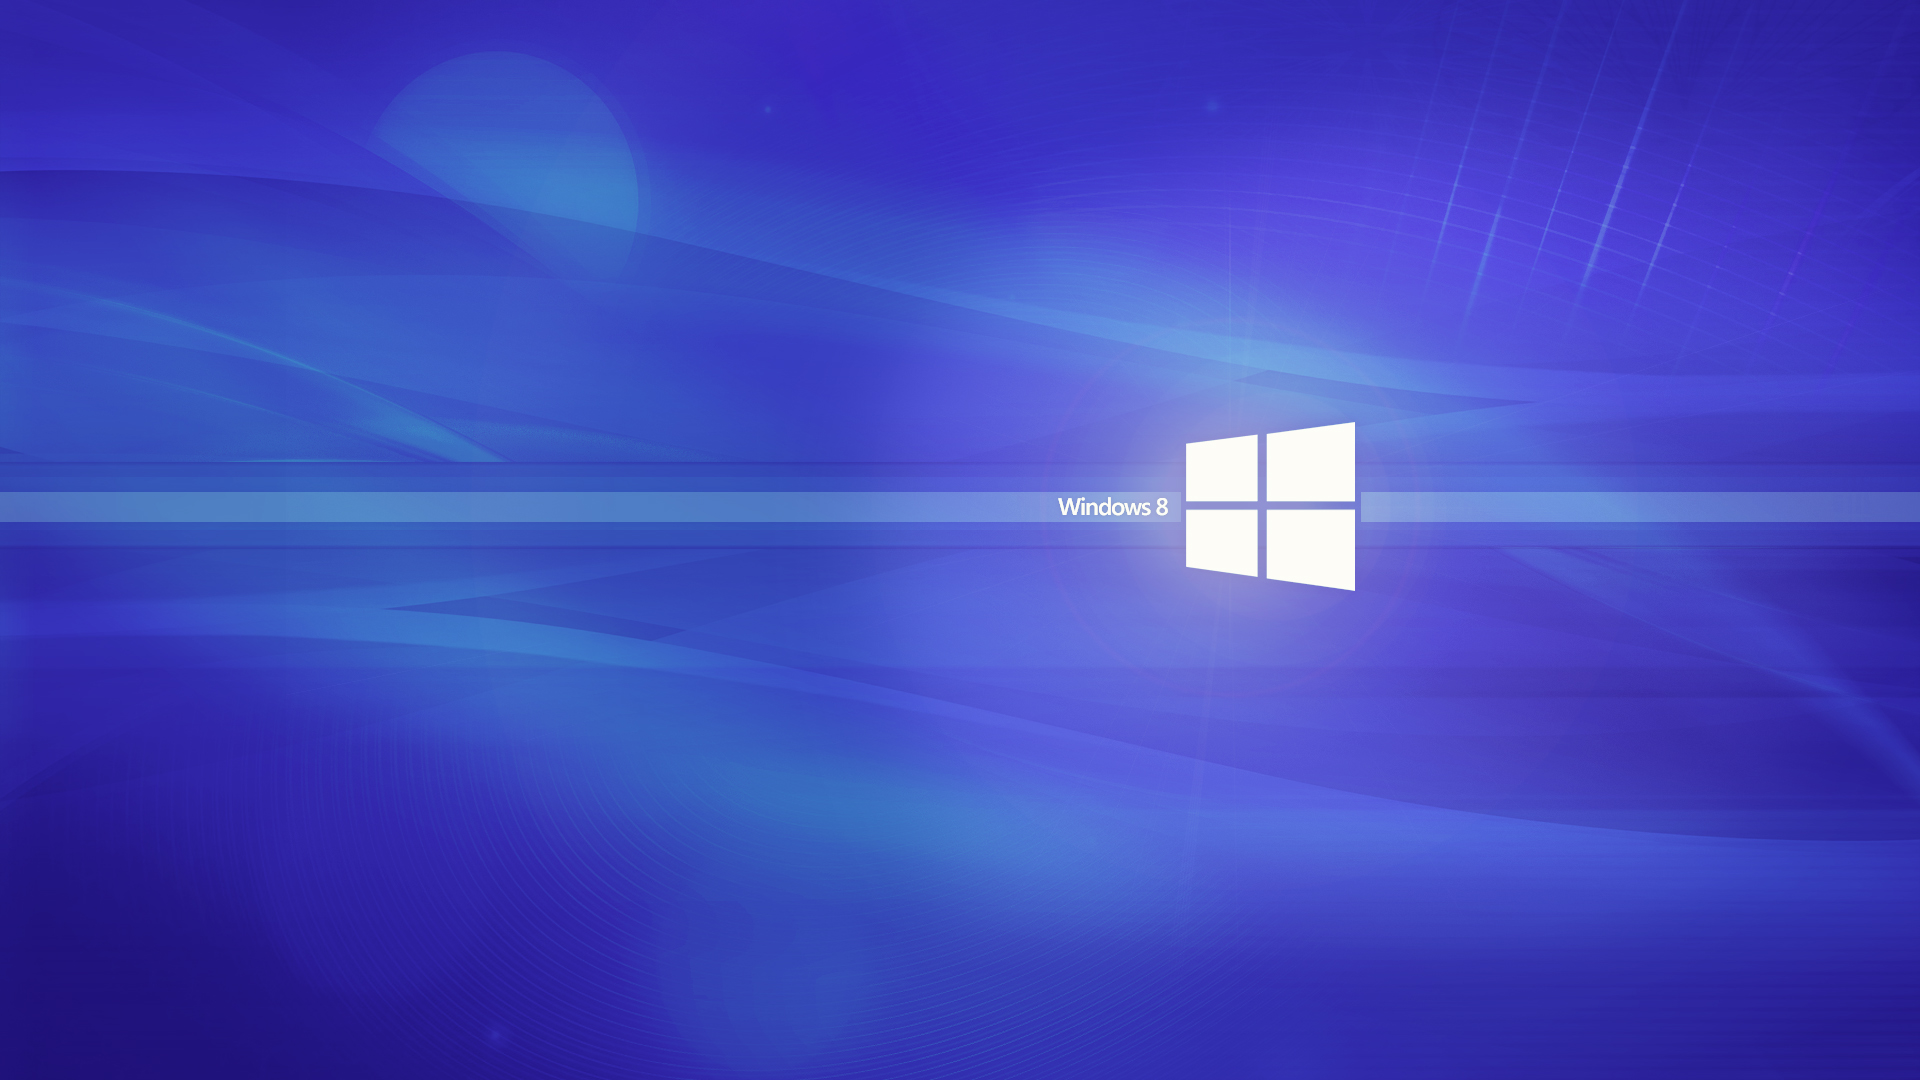 windows 8 full hd wallpaper and background image | 1920x1080 | id:637155